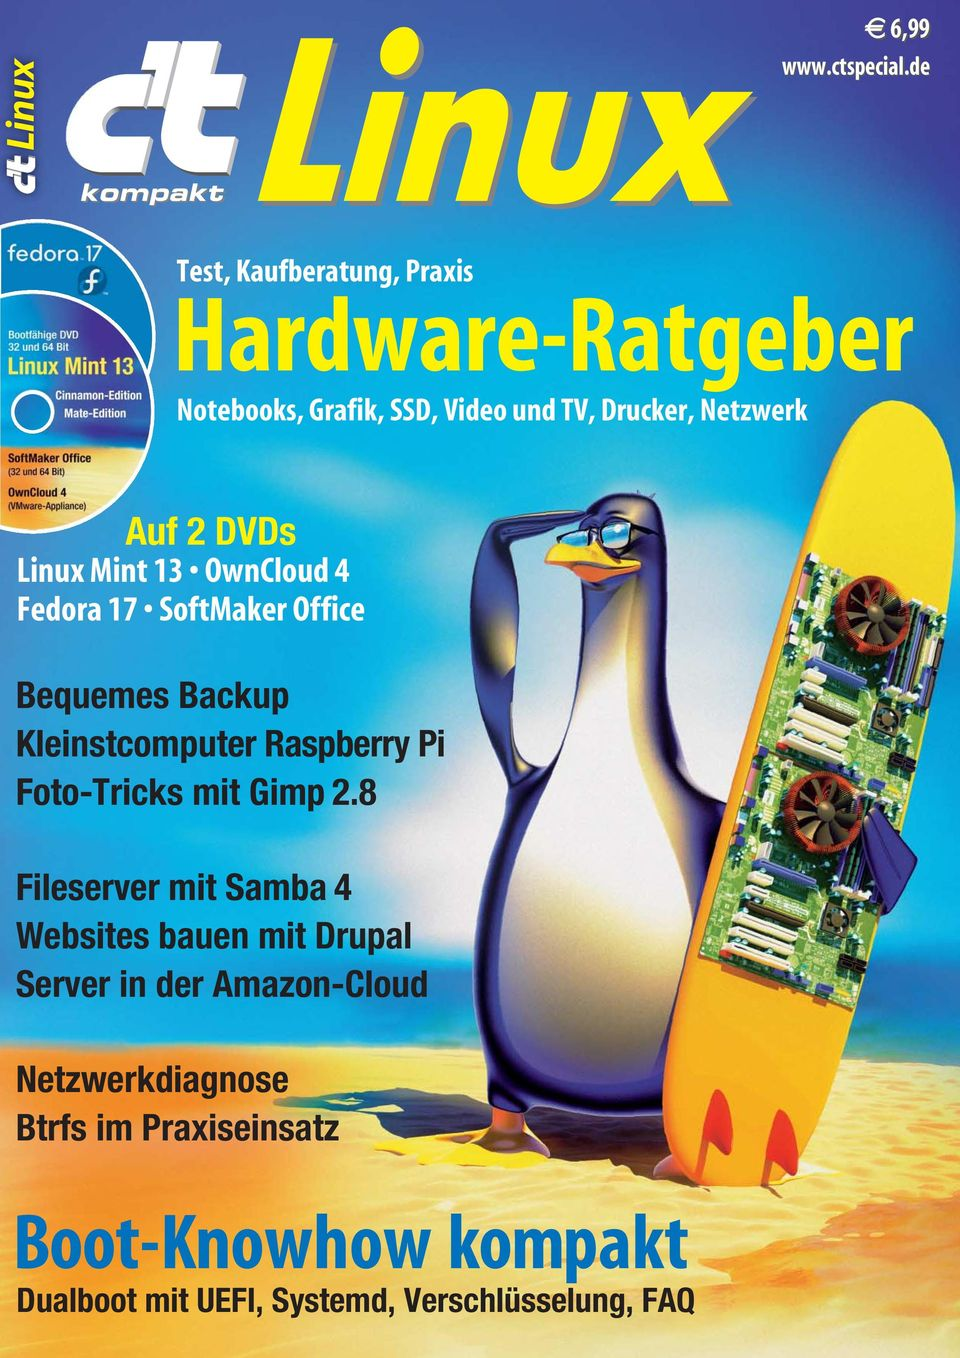 Linux Mint 13 OwnCloud 4 Fedora 17 SoftMaker Office Bequemes Backup Kleinstcomputer Raspberry Pi Foto-Tricks mit